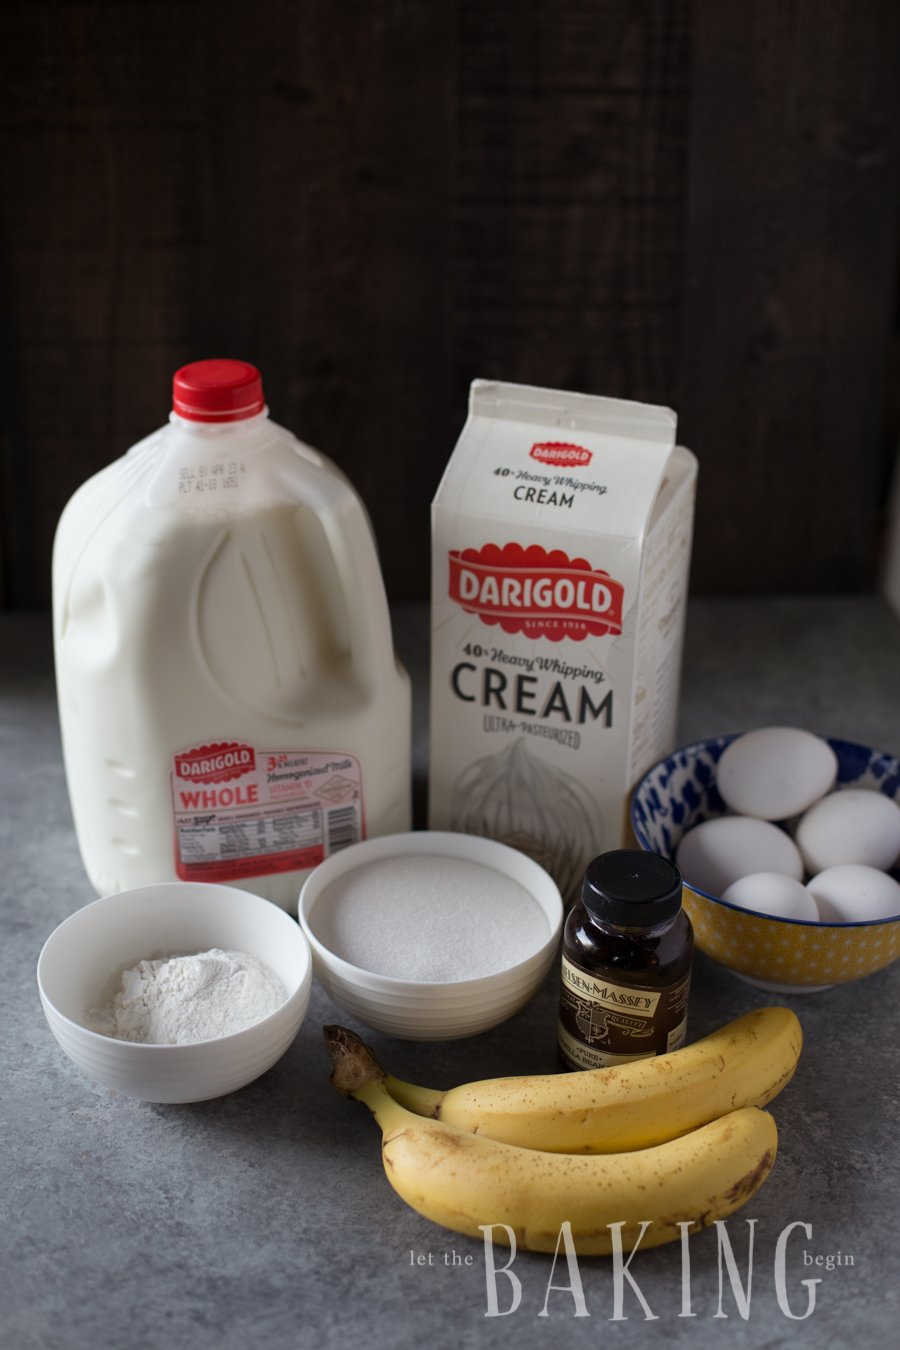 Graham crackers, egg yolks, eggs, sugar, flour, milk, heavy cream, and vanilla extract displayed on a counter top.